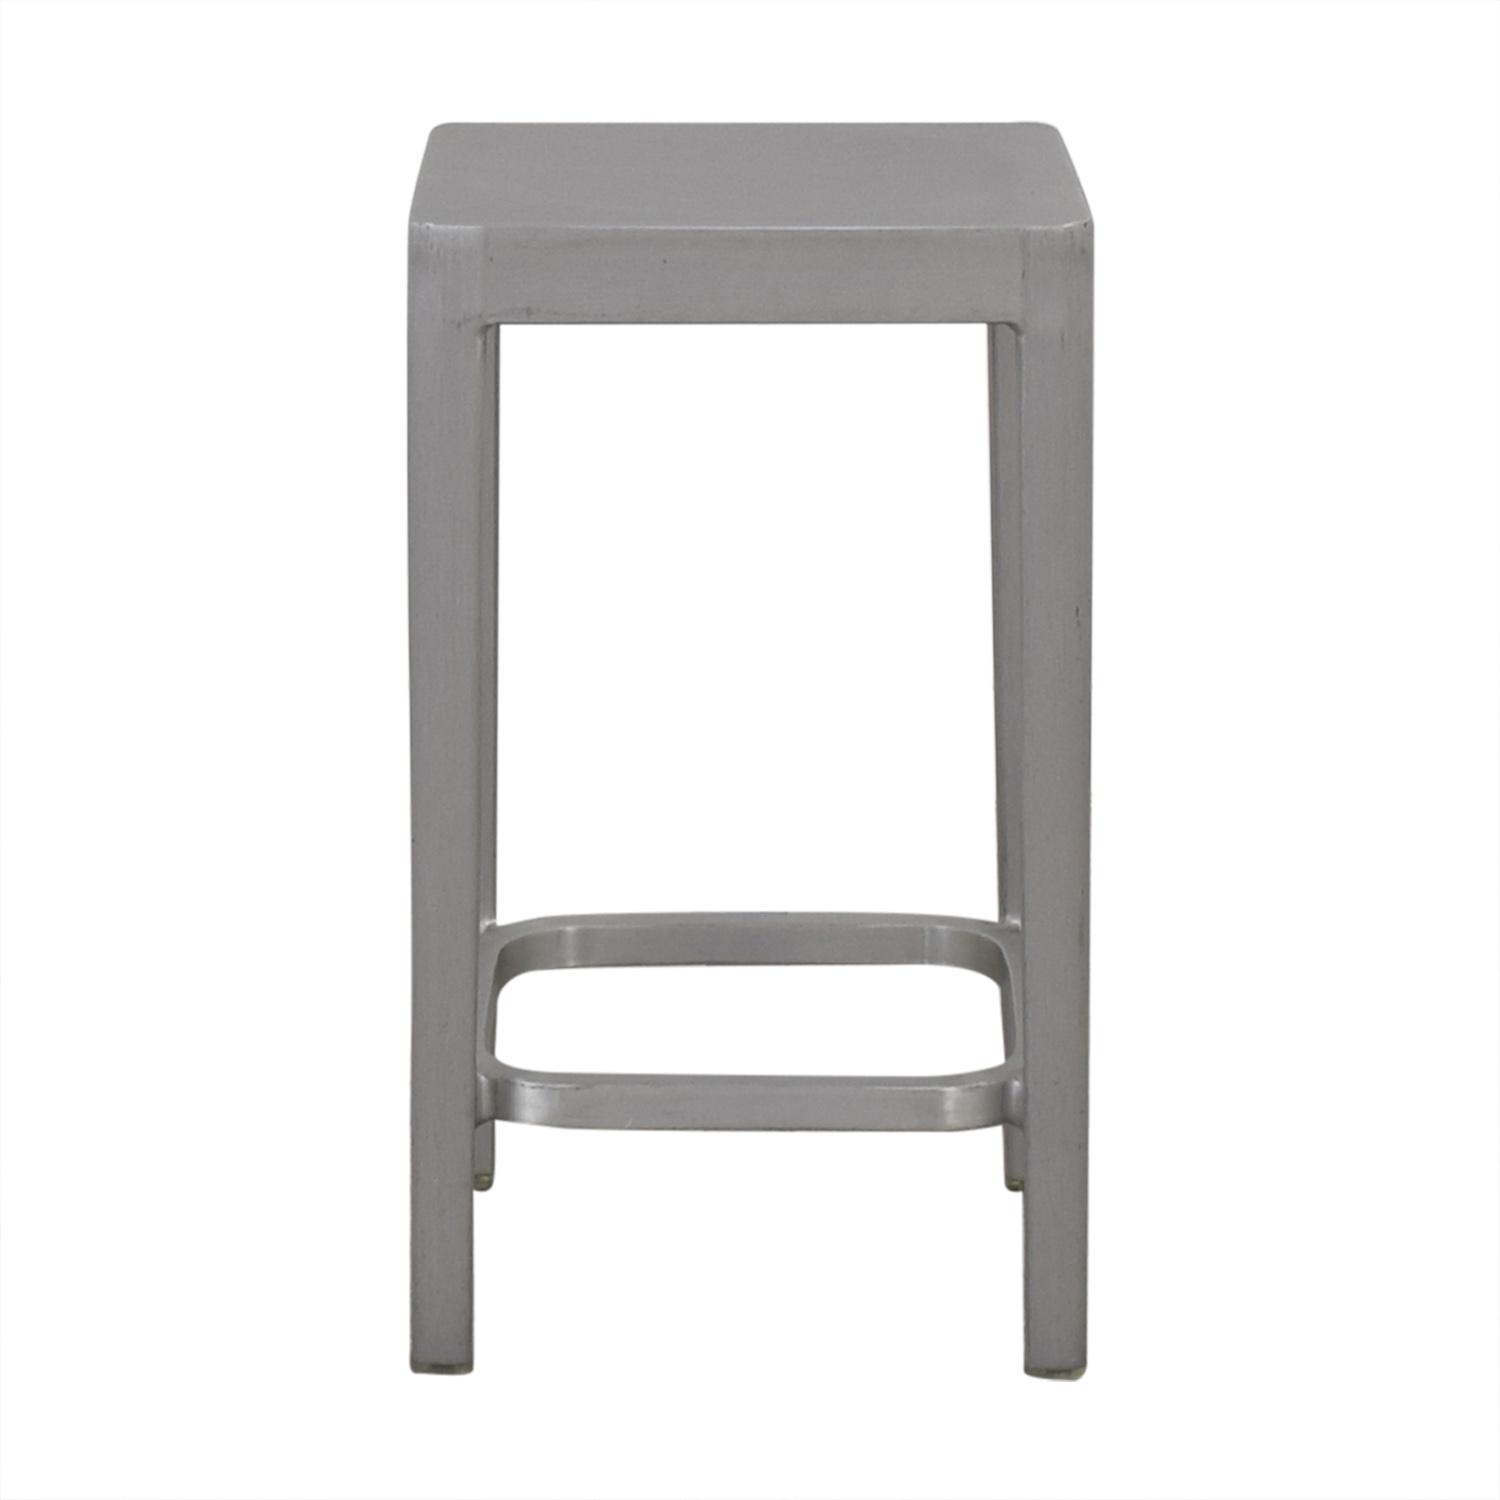 Design Within Reach Design Within Reach Emeco Counter Stool price